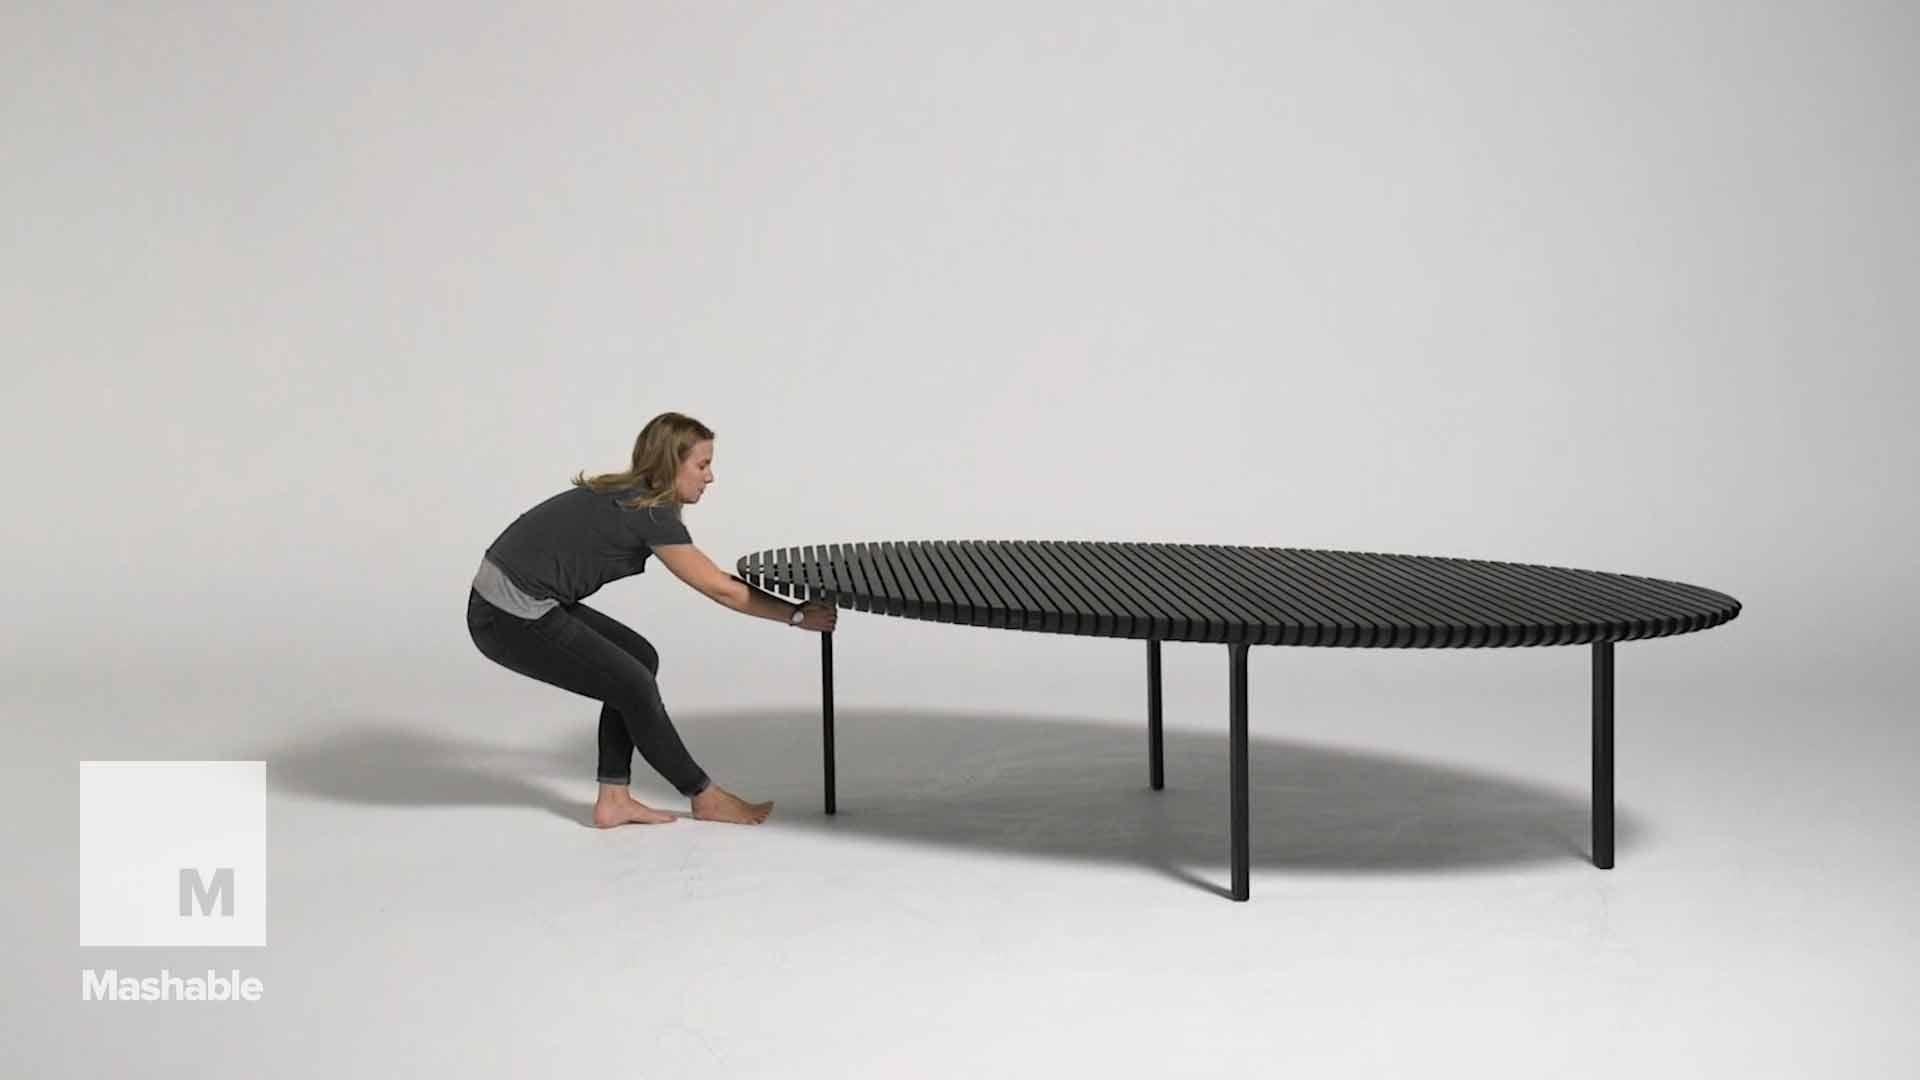 Someone designed an accordion-like table that unfolds to double its length